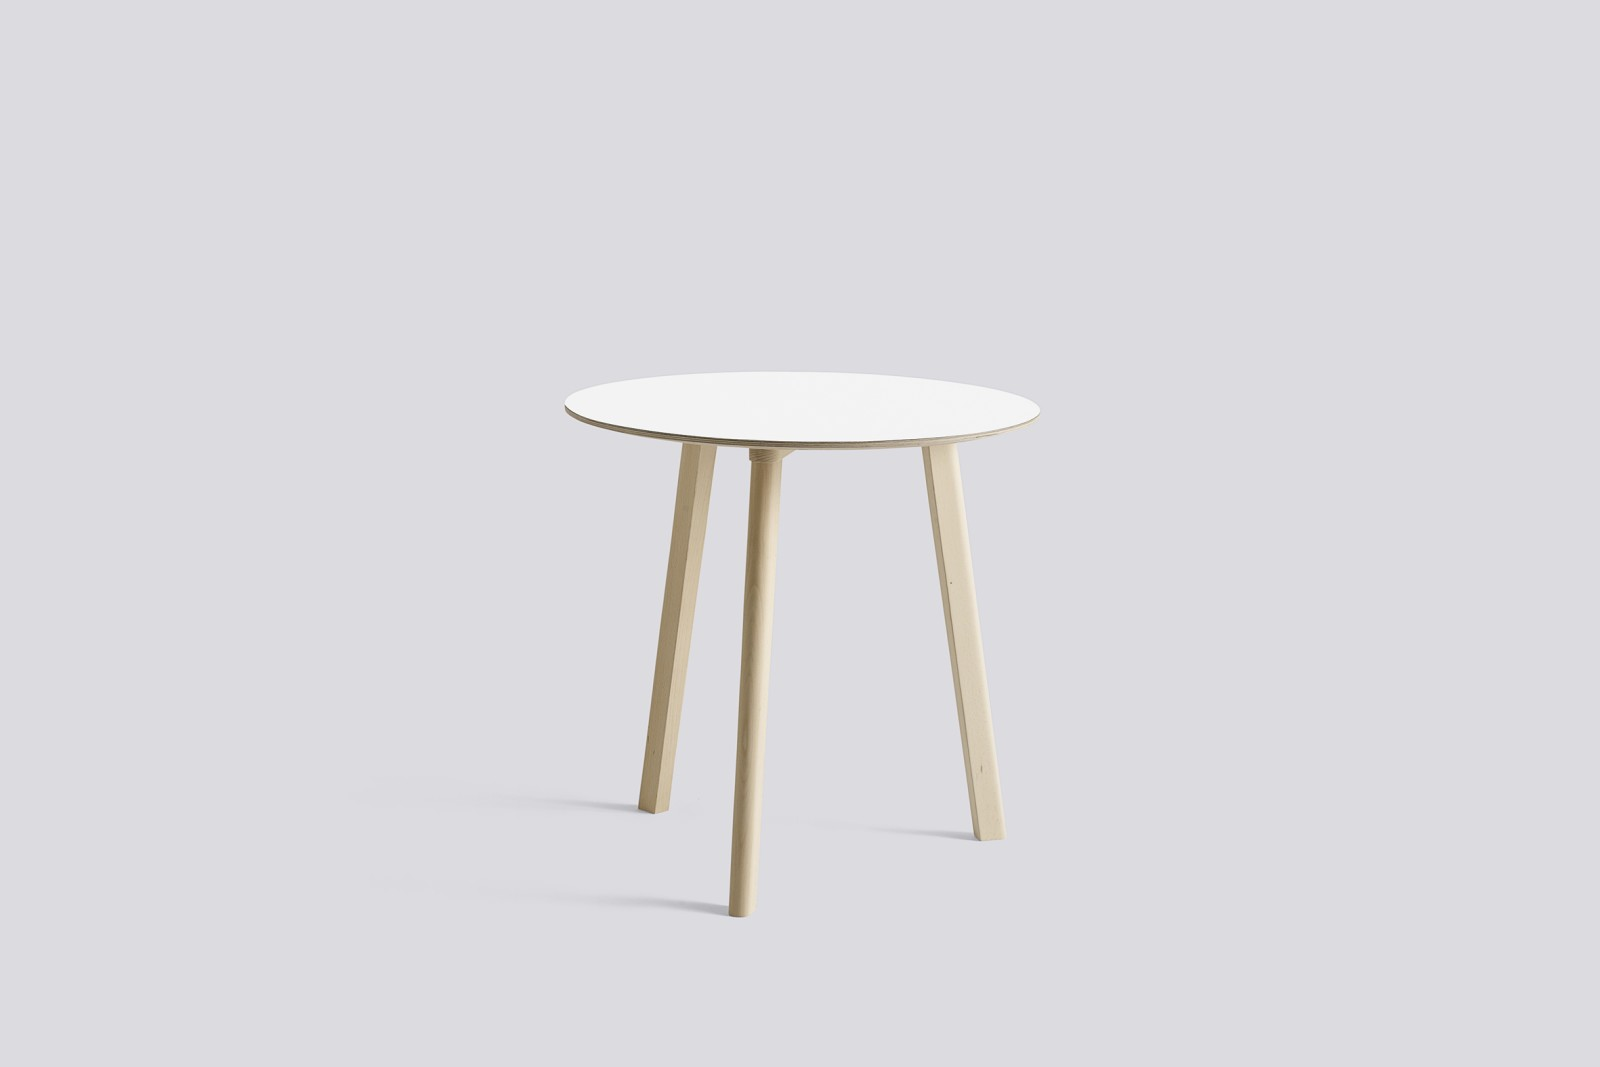 Copenhague Deux (CPH 220) Round Dining Table Beige Grey laminate Top, Beige Grey Beech Base, 98 cm